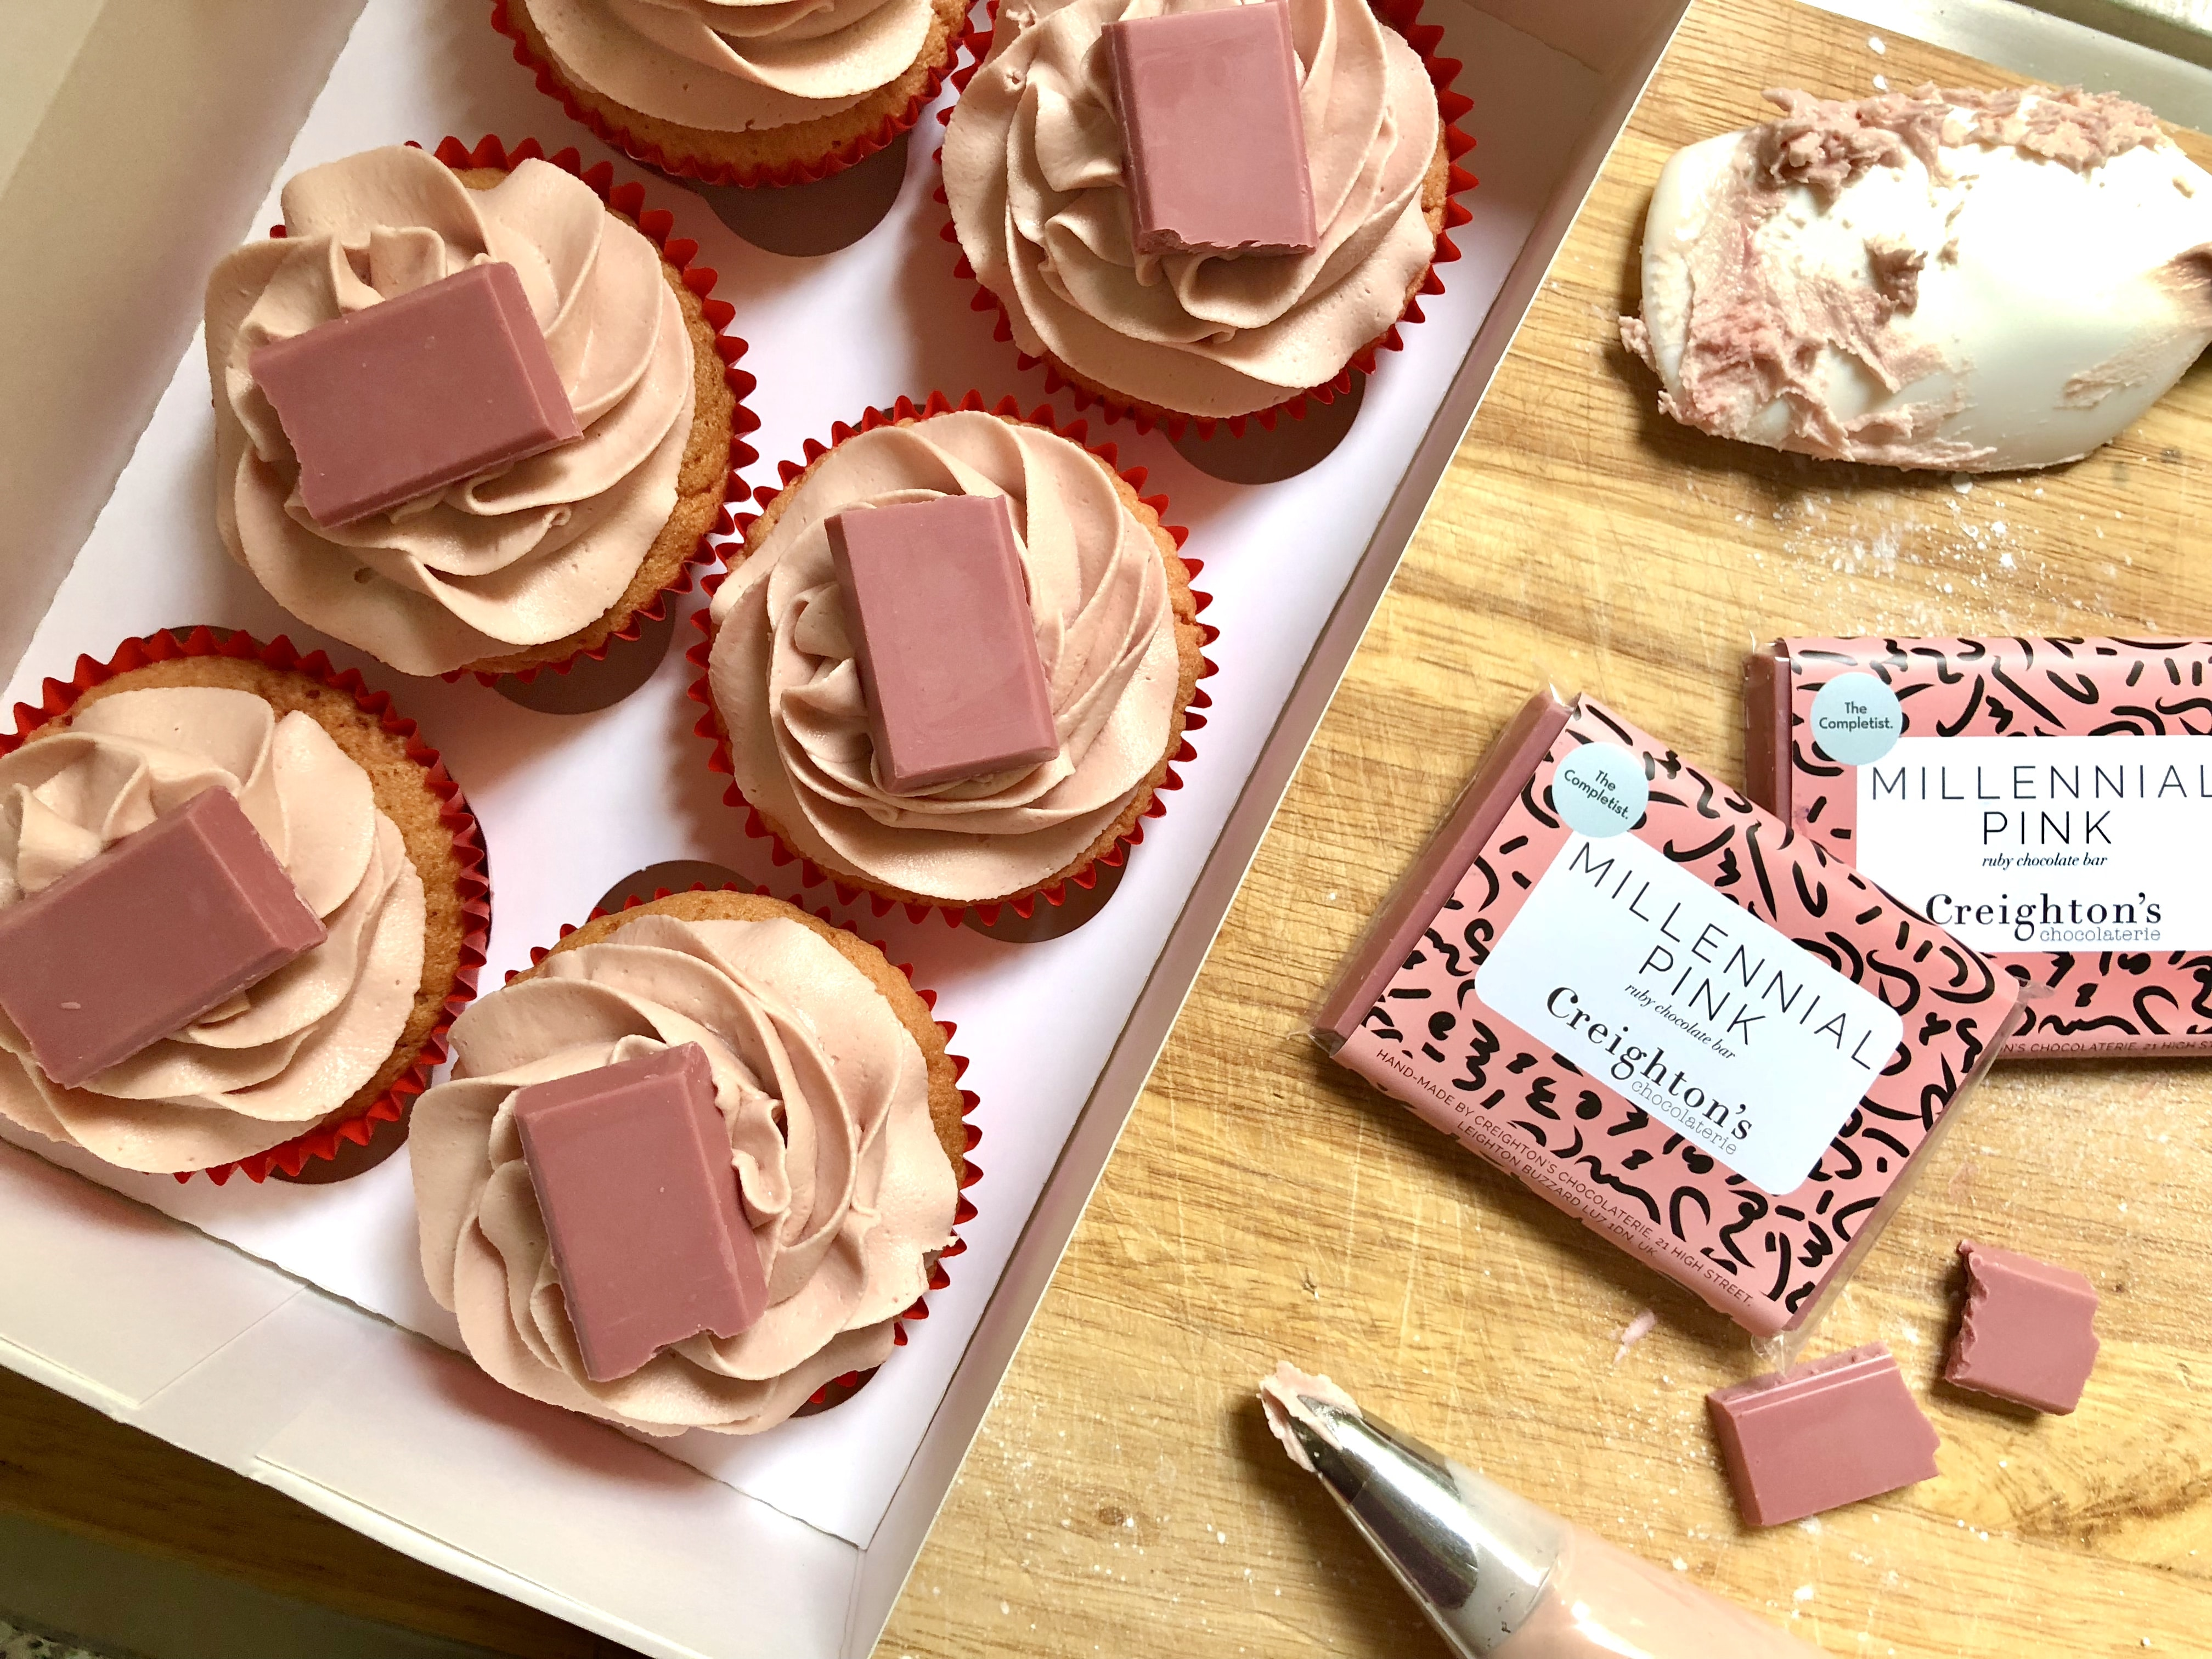 Ruby Chocolate Cupcakes - Baking with Ruby Chocolate